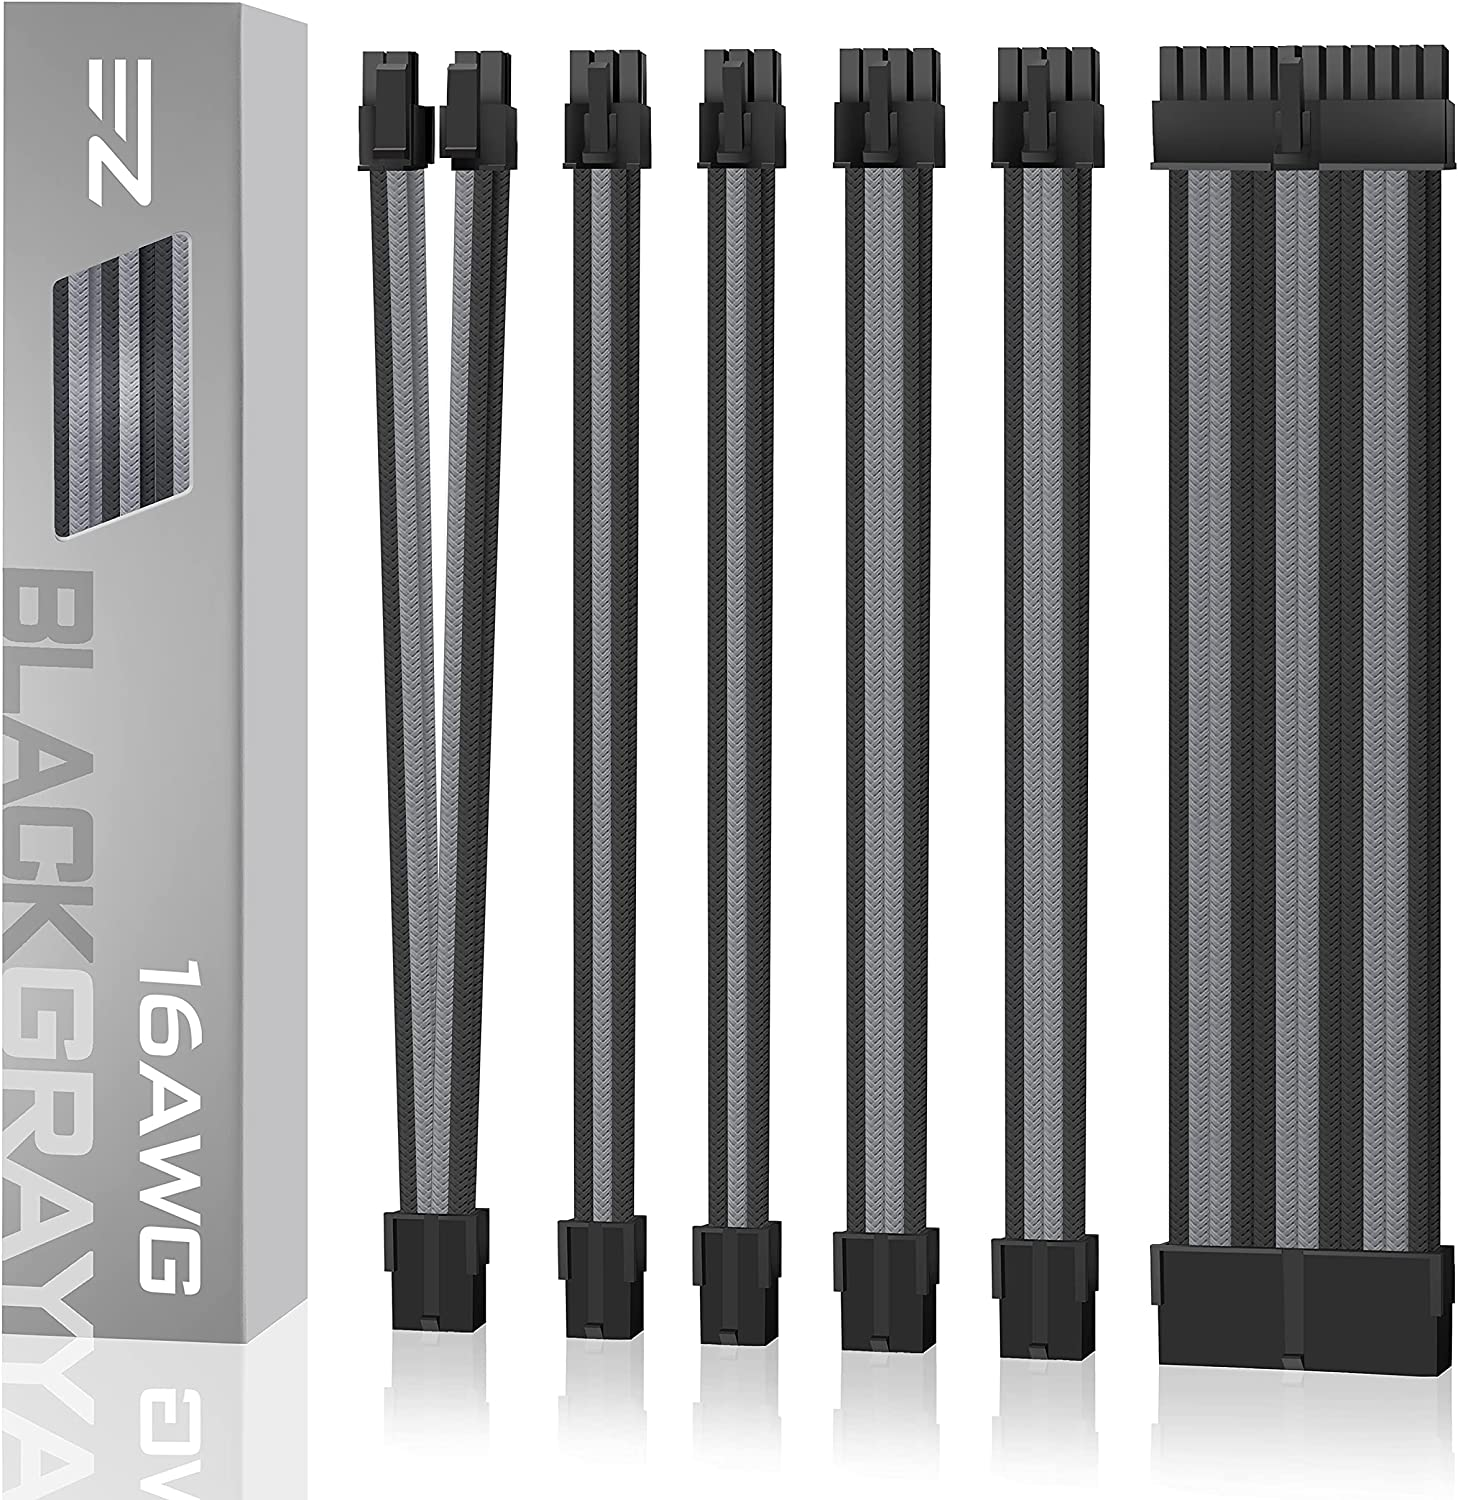 EZDIY-FAB PSU Cable Extension kit Sleeved Cable Custom Power Supply Sleeved Extension 16 AWG 24-PIN 8-PIN 6-PIN 4+4-PIN with Combs- Black/Grey